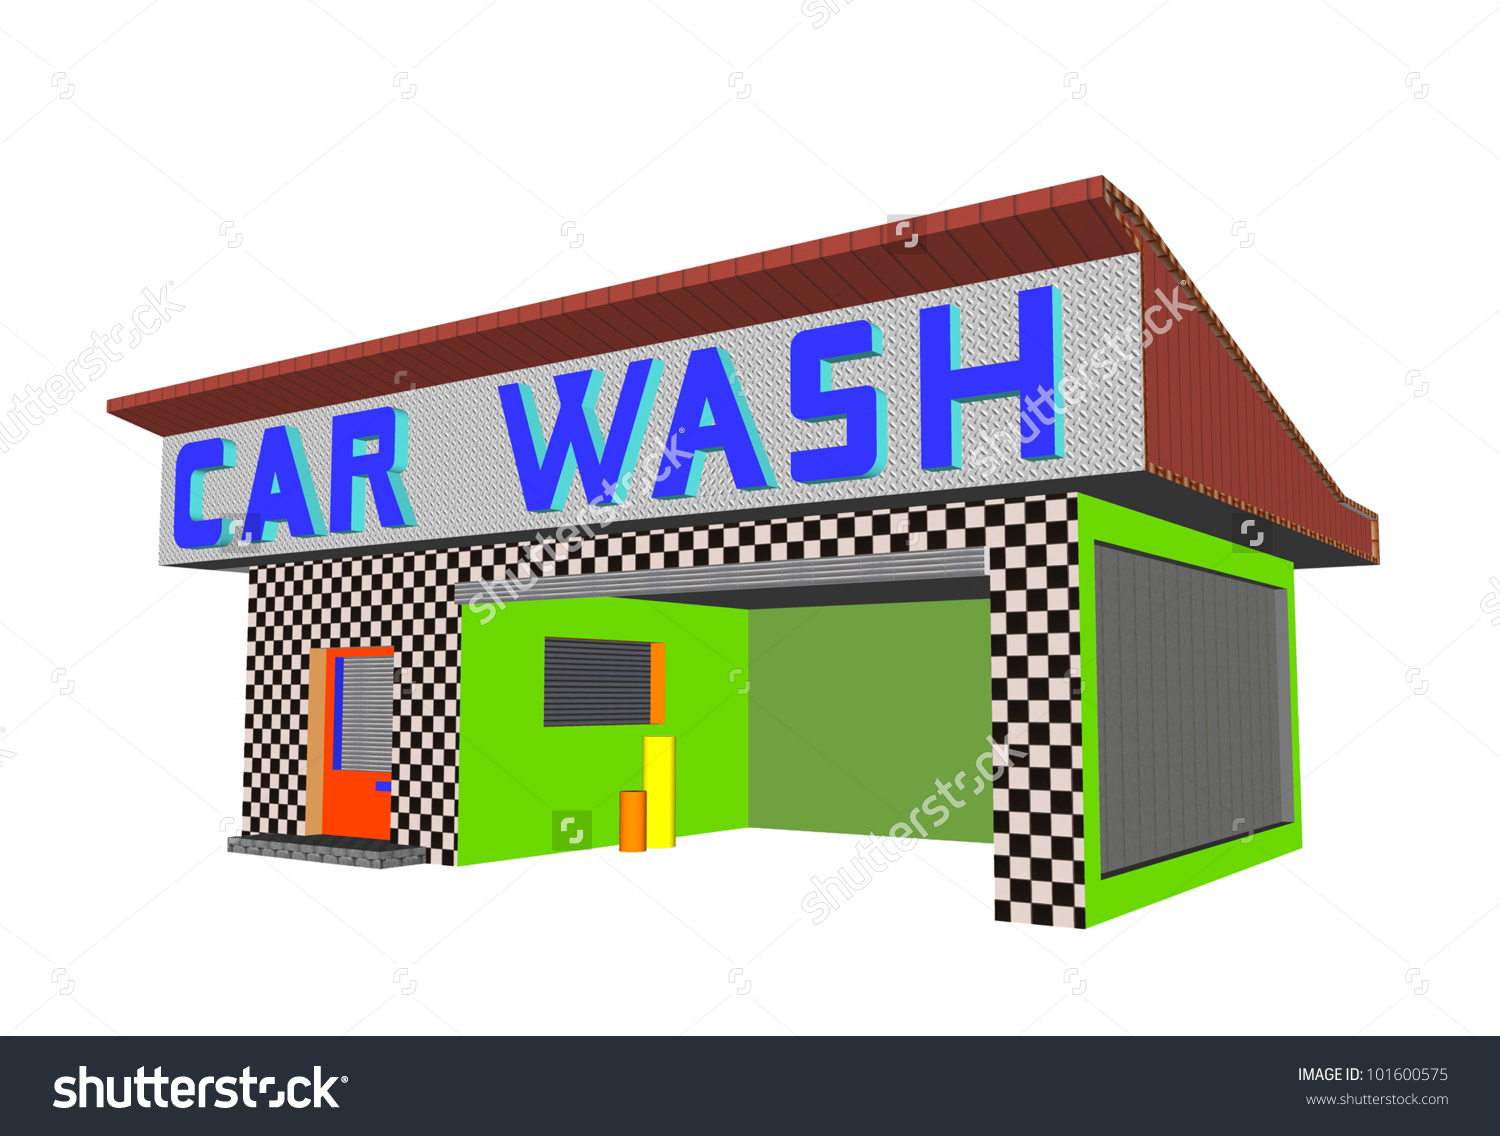 Car in car wash clipart banner free download Car wash building clipart - ClipartFox banner free download